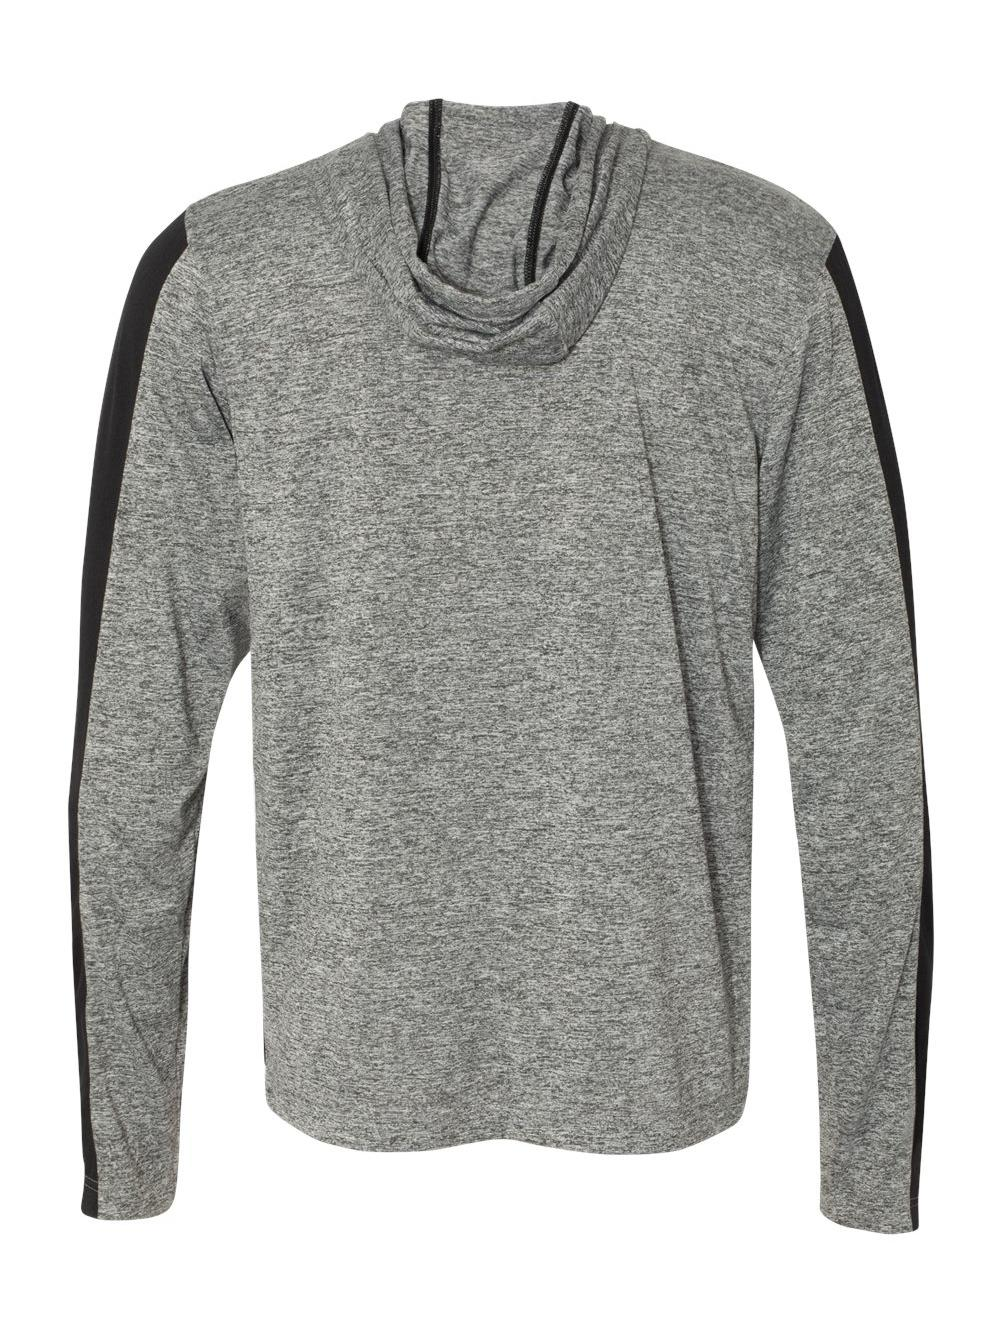 Rawlings-Performance-Cationic-Hooded-Pullover-T-Shirt-8199 thumbnail 7